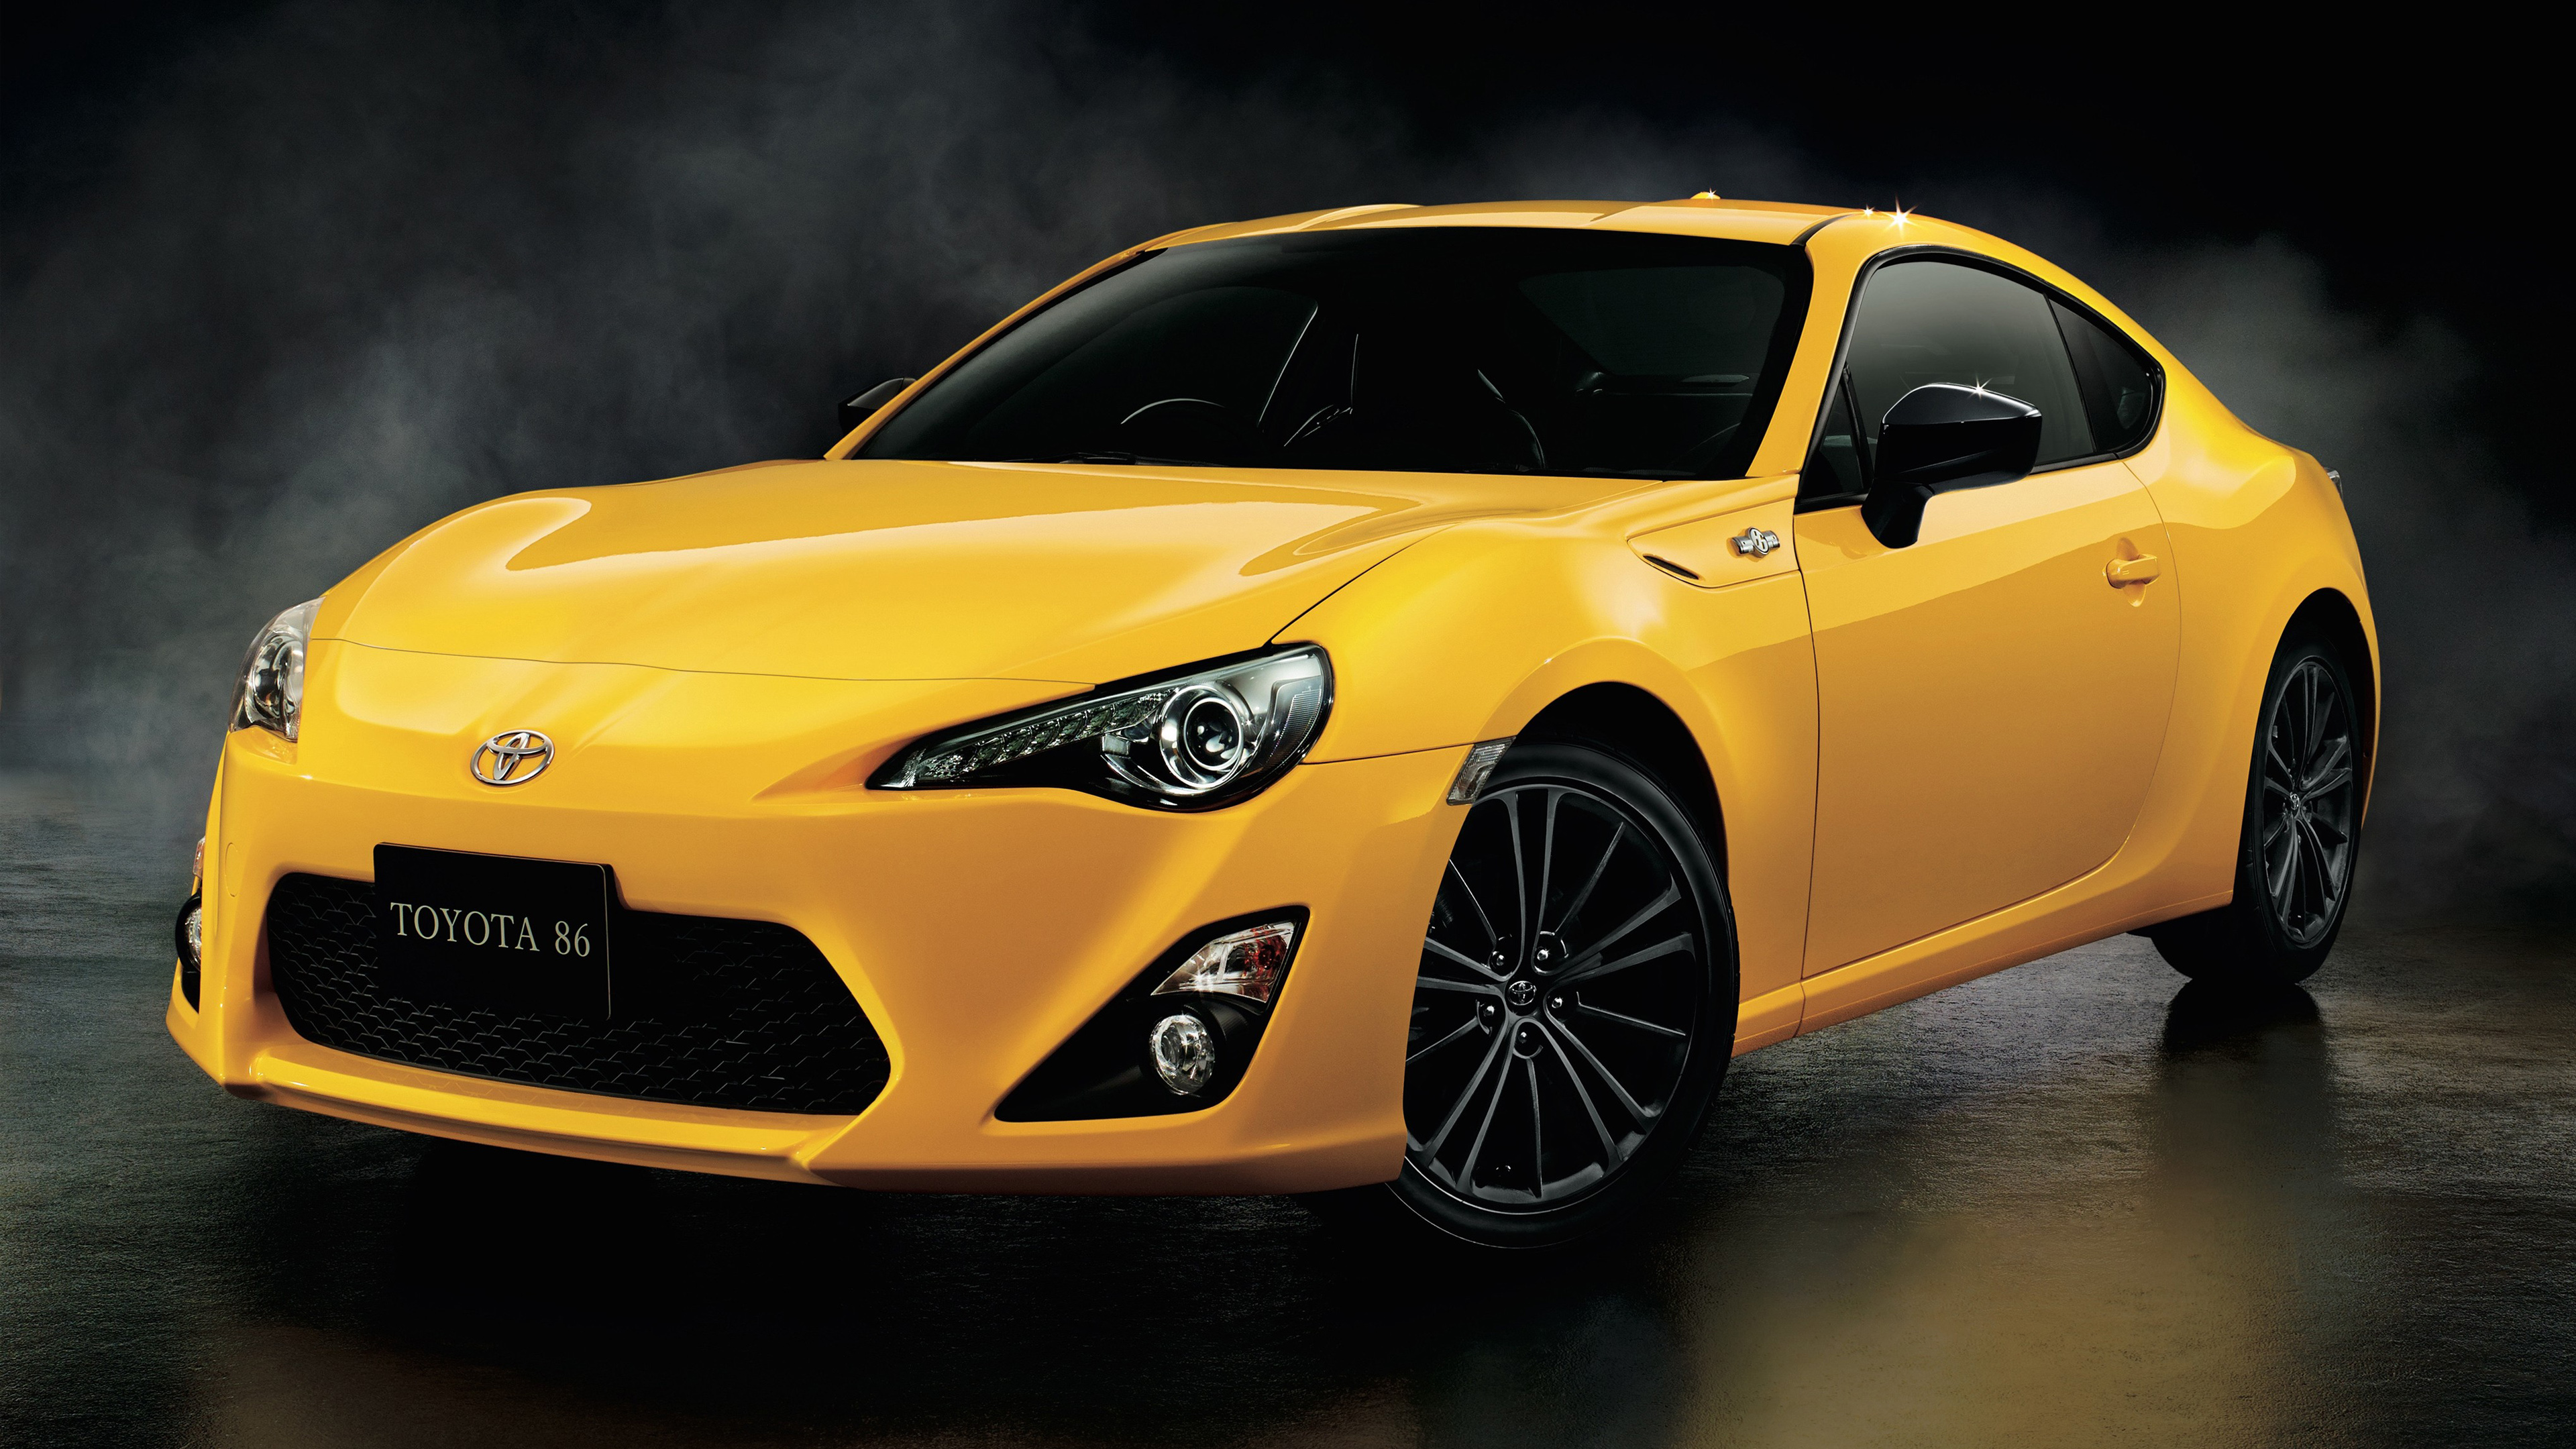 Toyota GT 86 Wallpaper HD Car Wallpapers 3840x2160